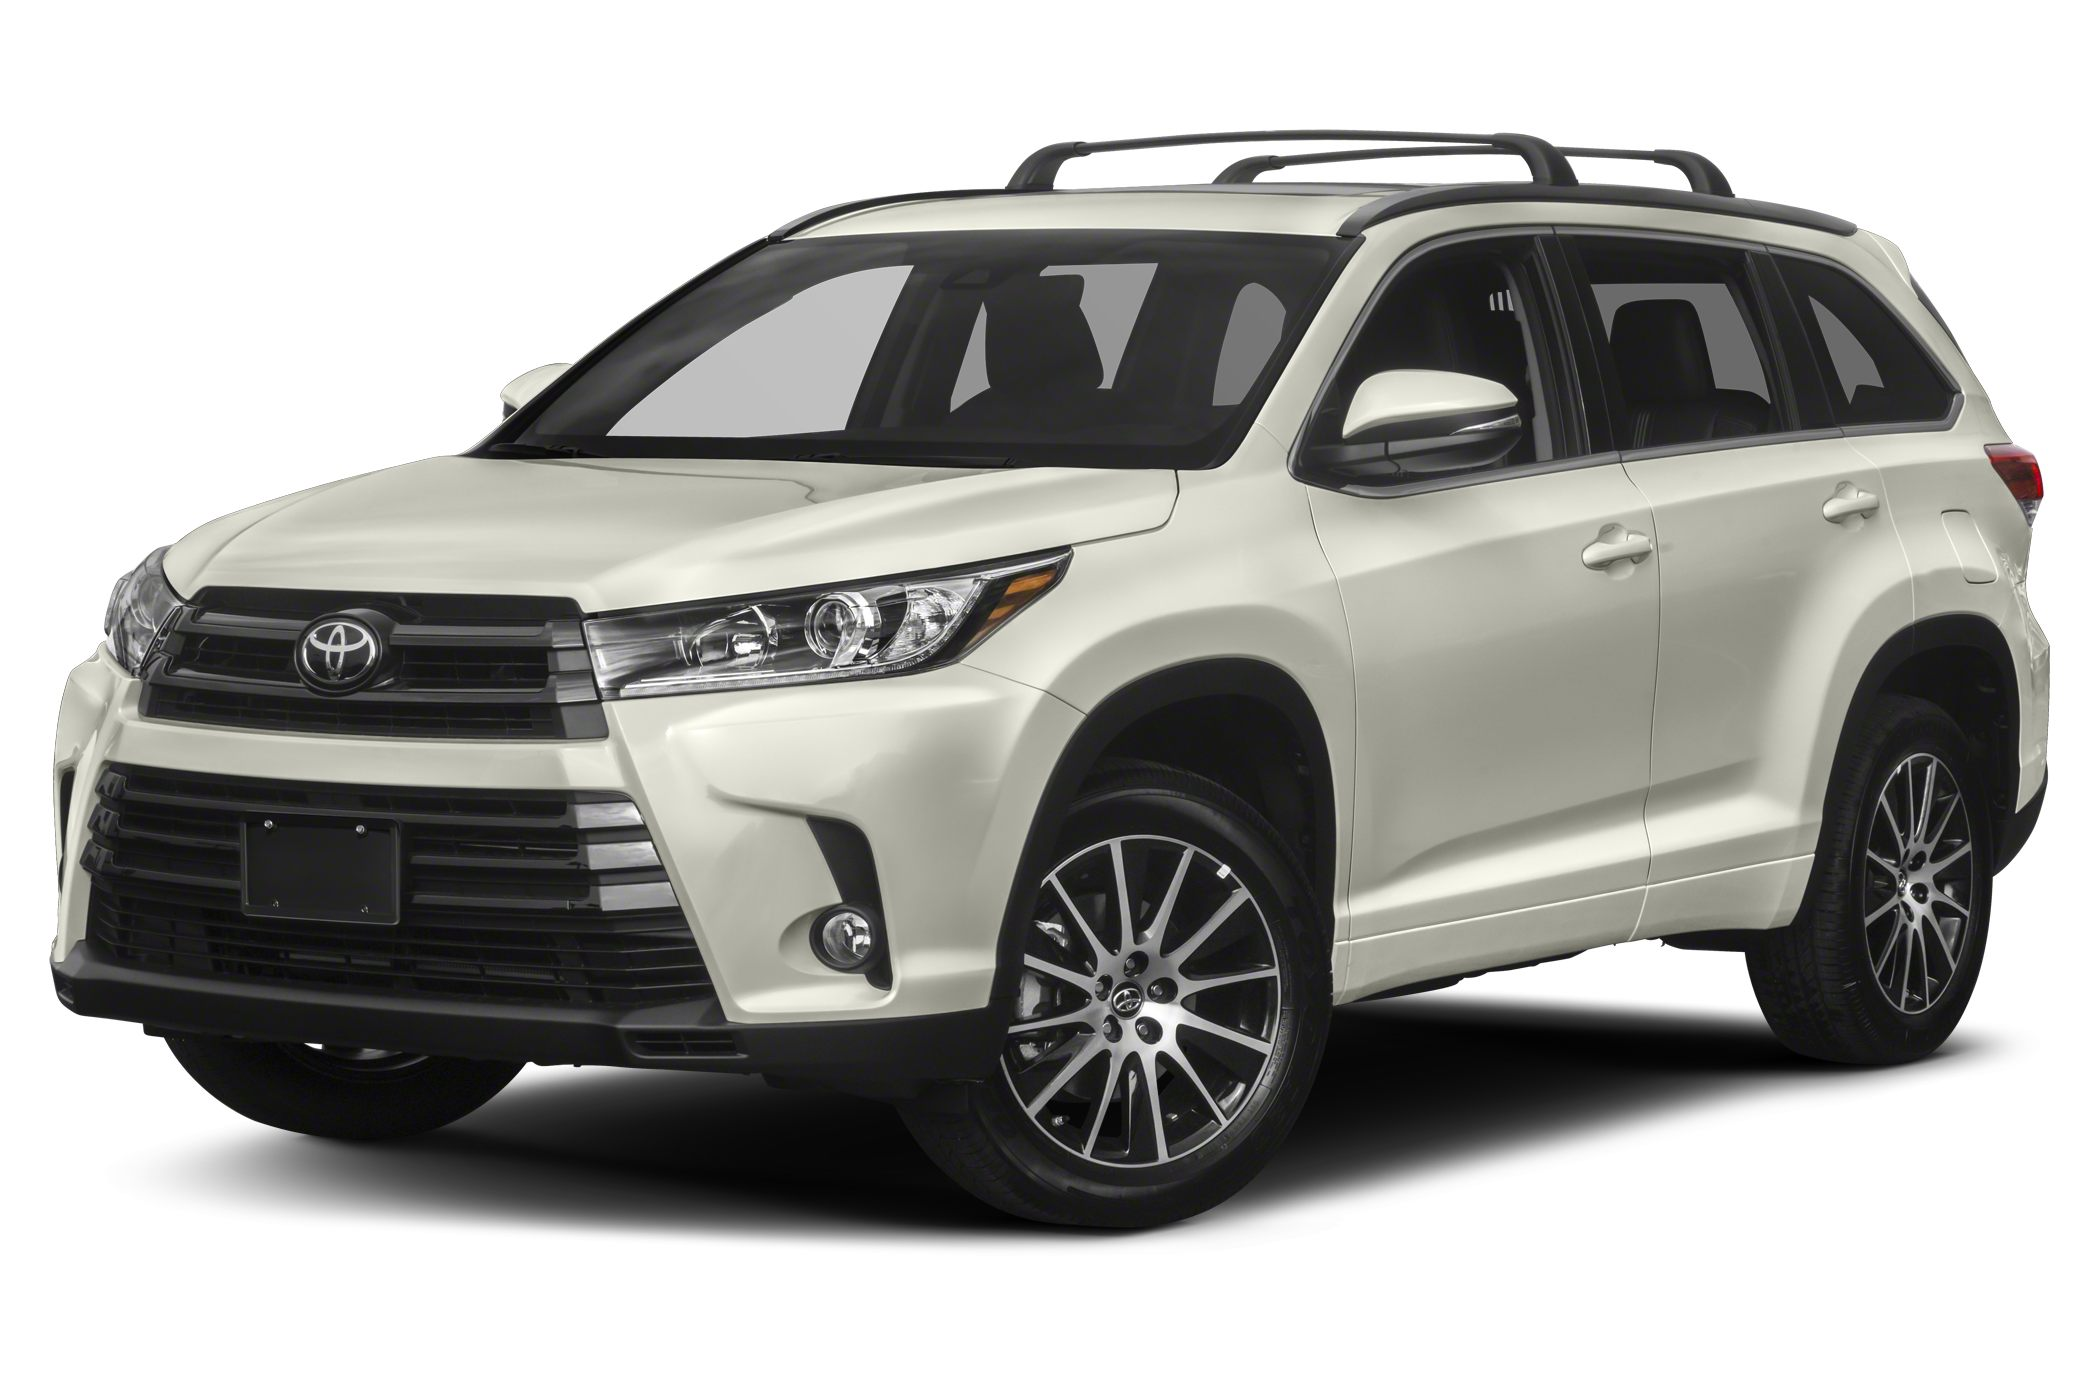 2019 Toyota Highlander SE V6 4dr All-wheel Drive